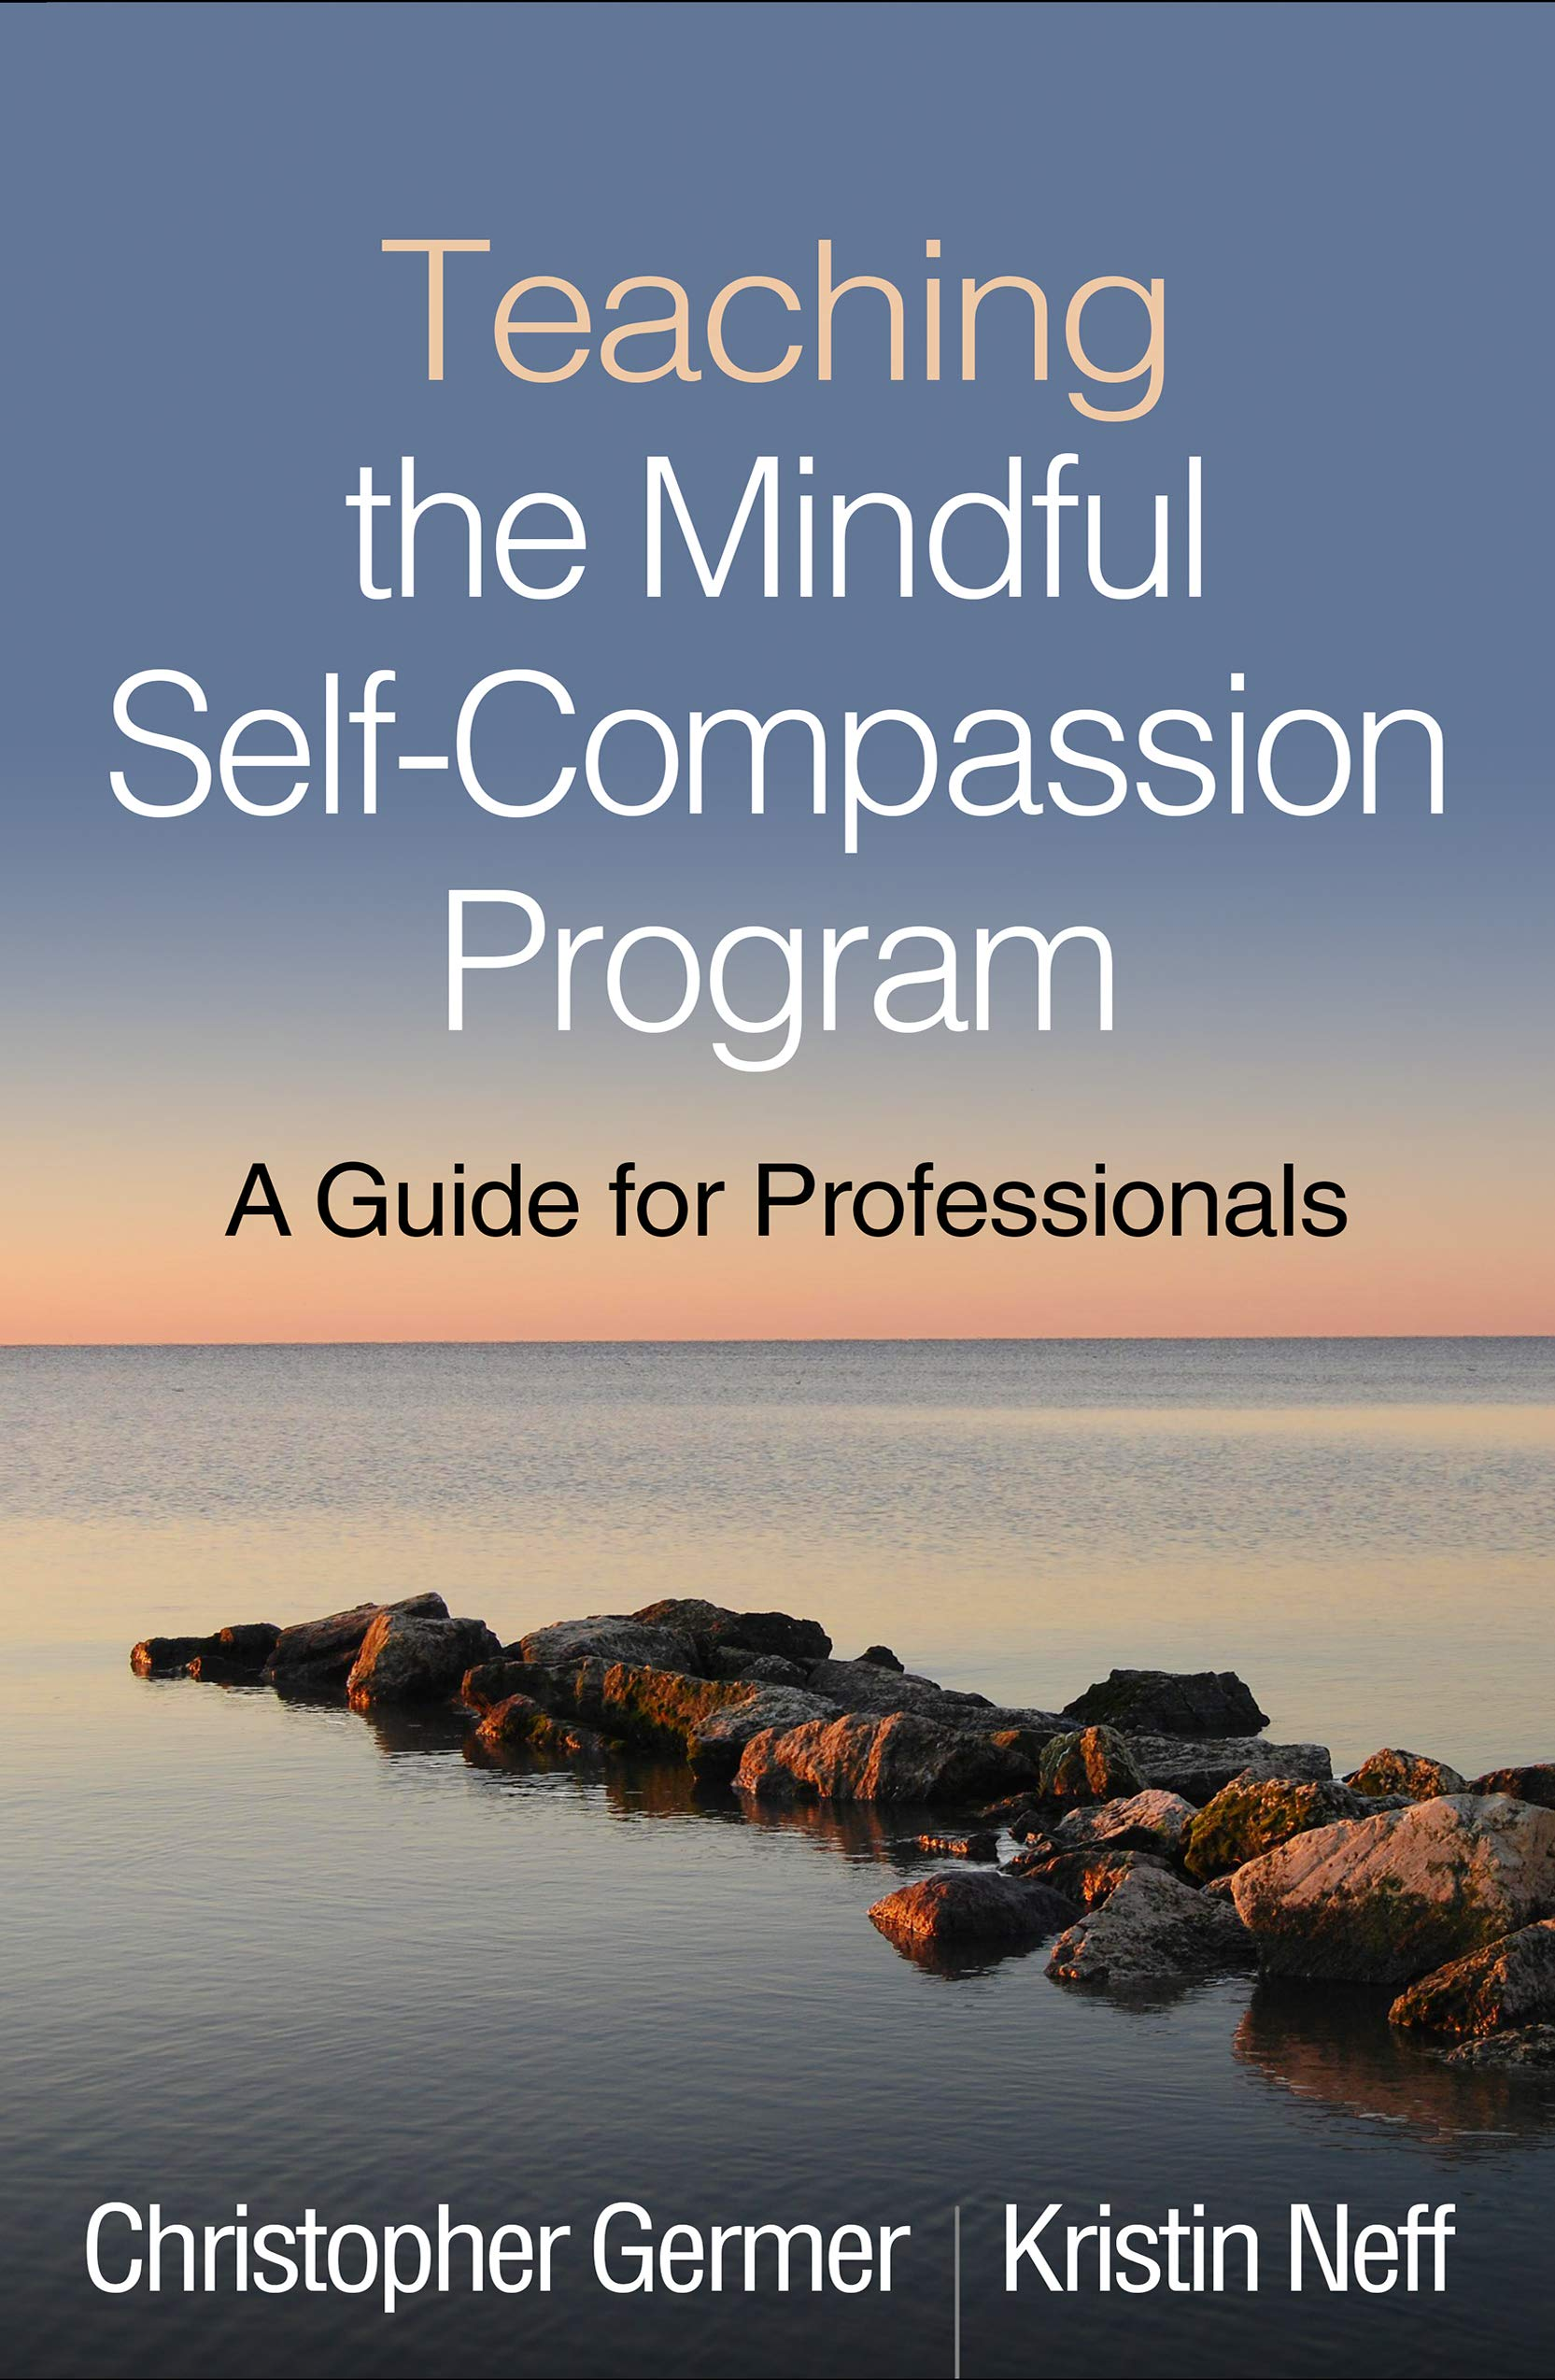 Teaching the Mindful Self-Compassion Program: A Guide for Professionals by The Guilford Press